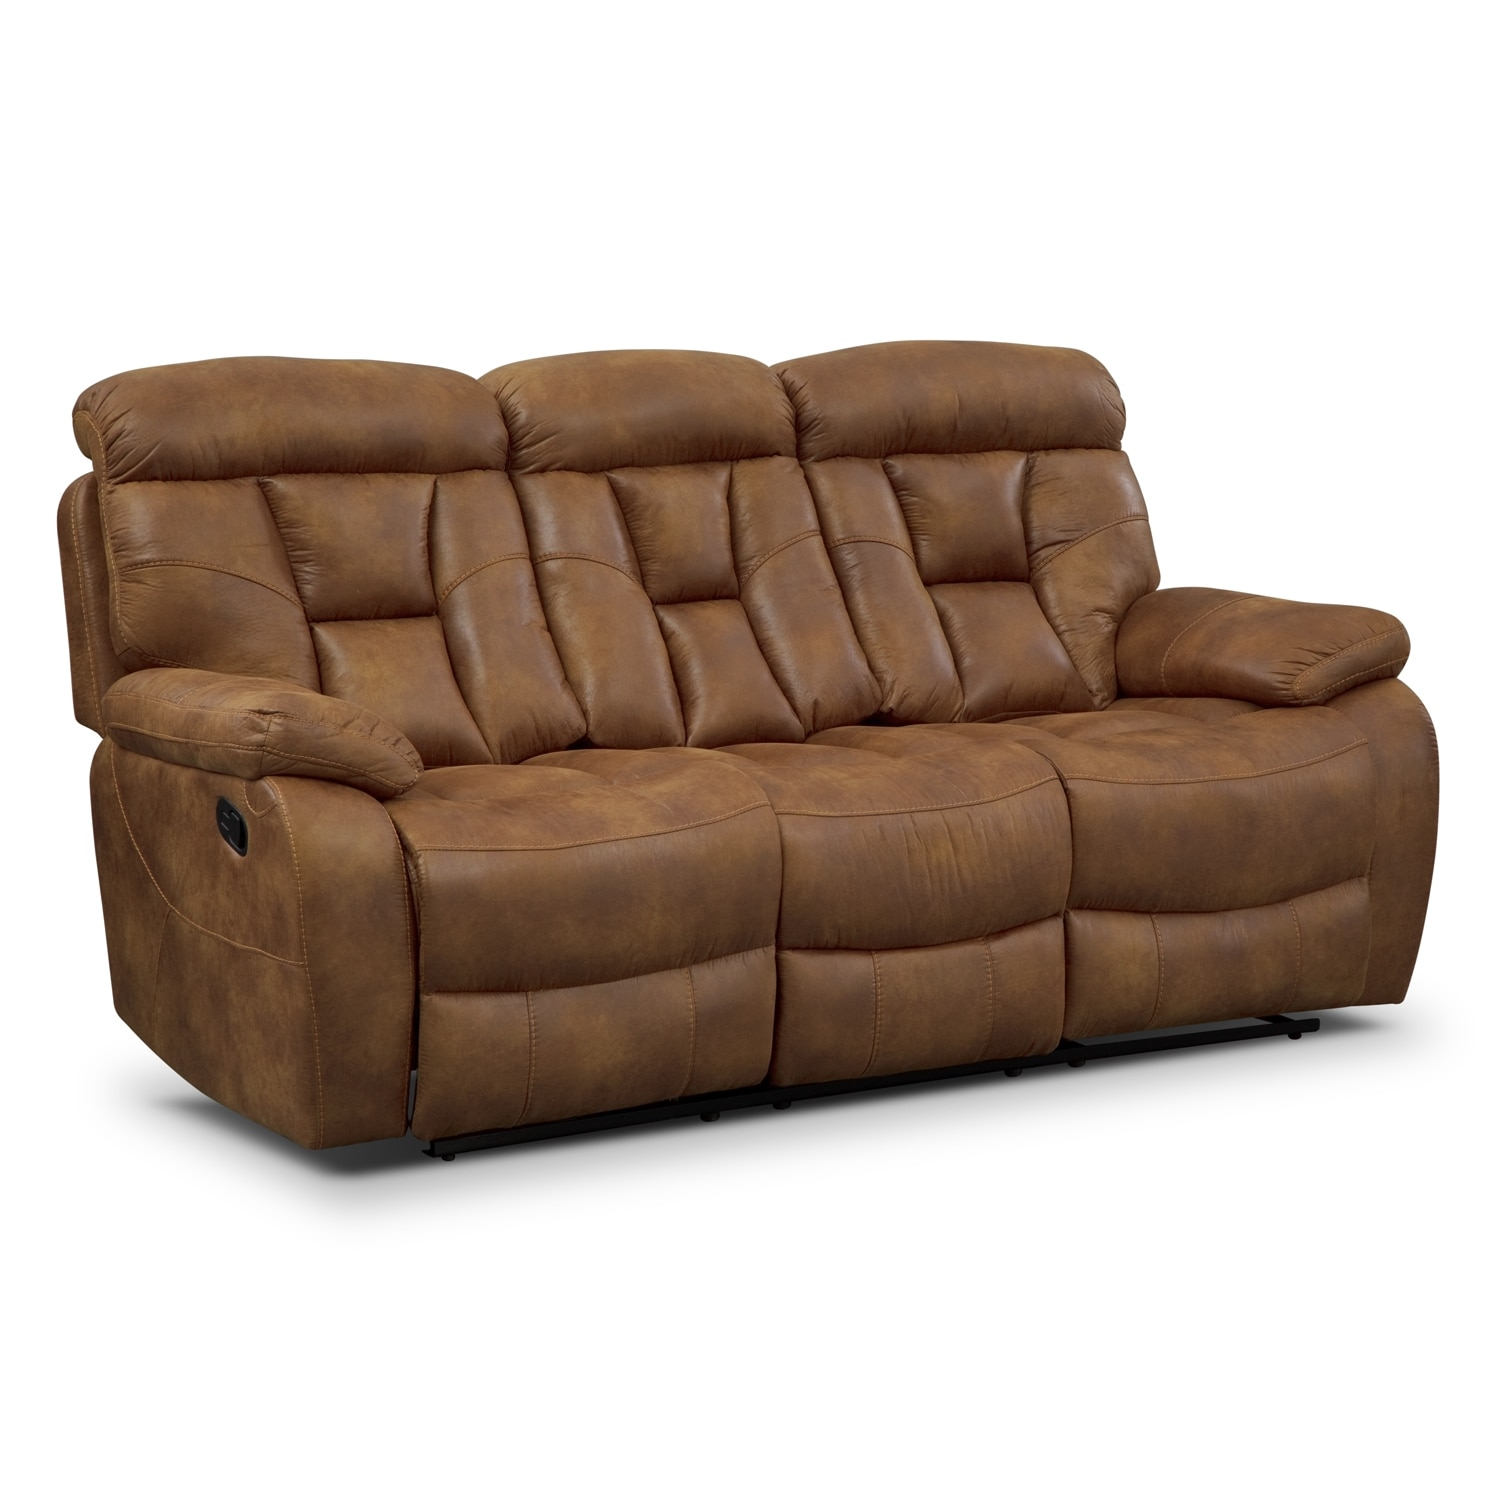 Dakota Ii Reclining Sofa Value City Furniture